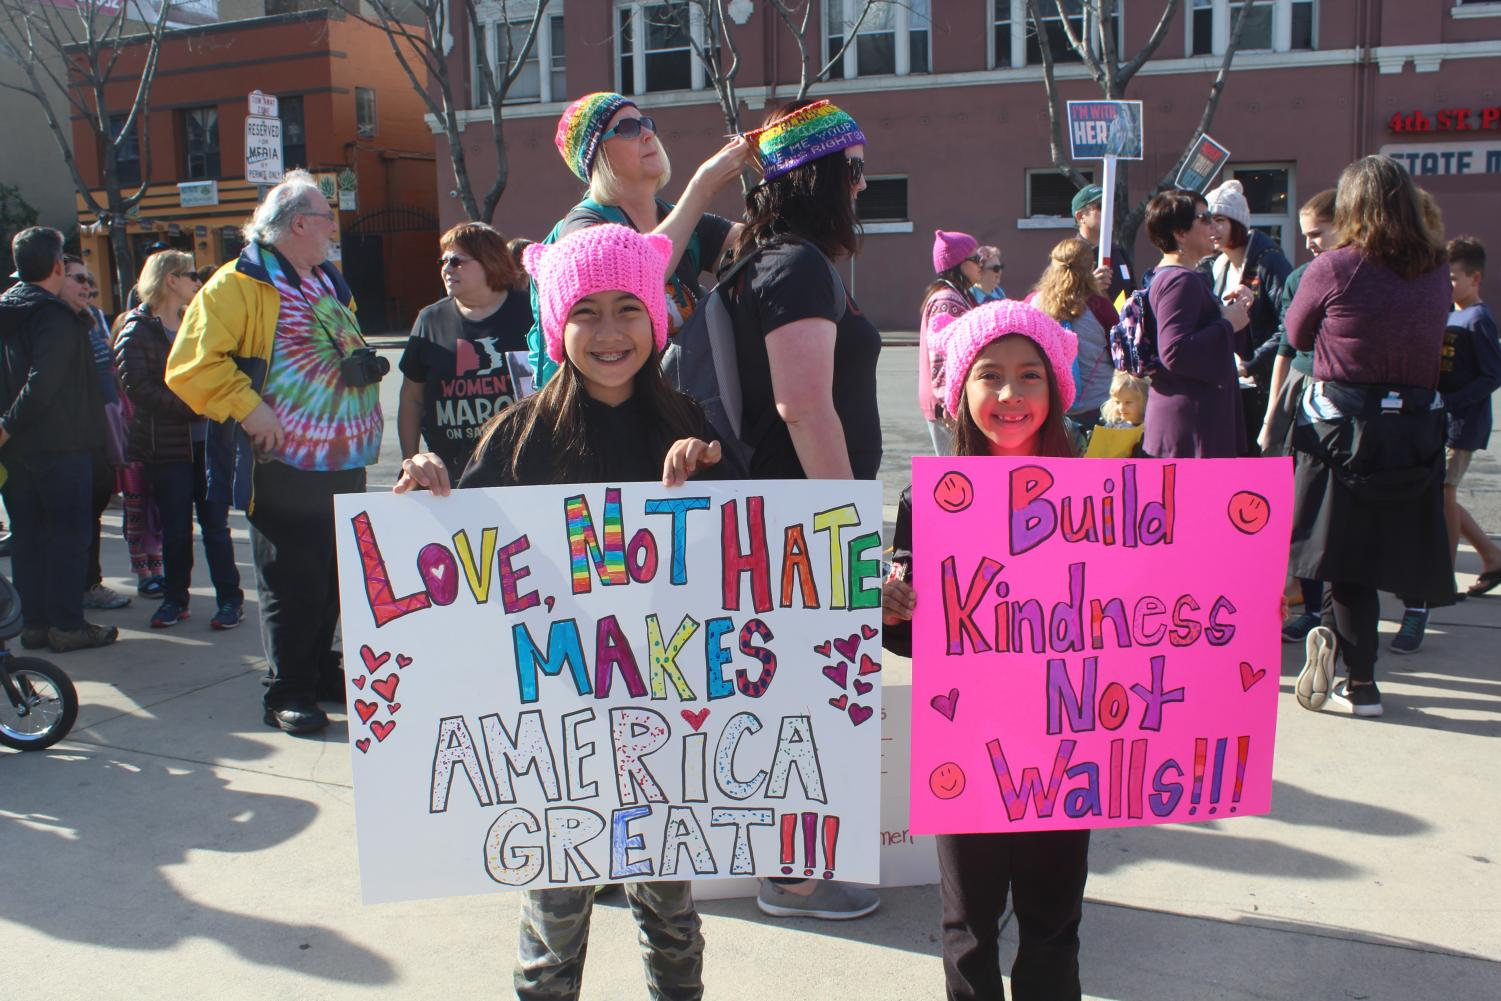 By Zoe Goddard, Girls proudly show off their homemade signs